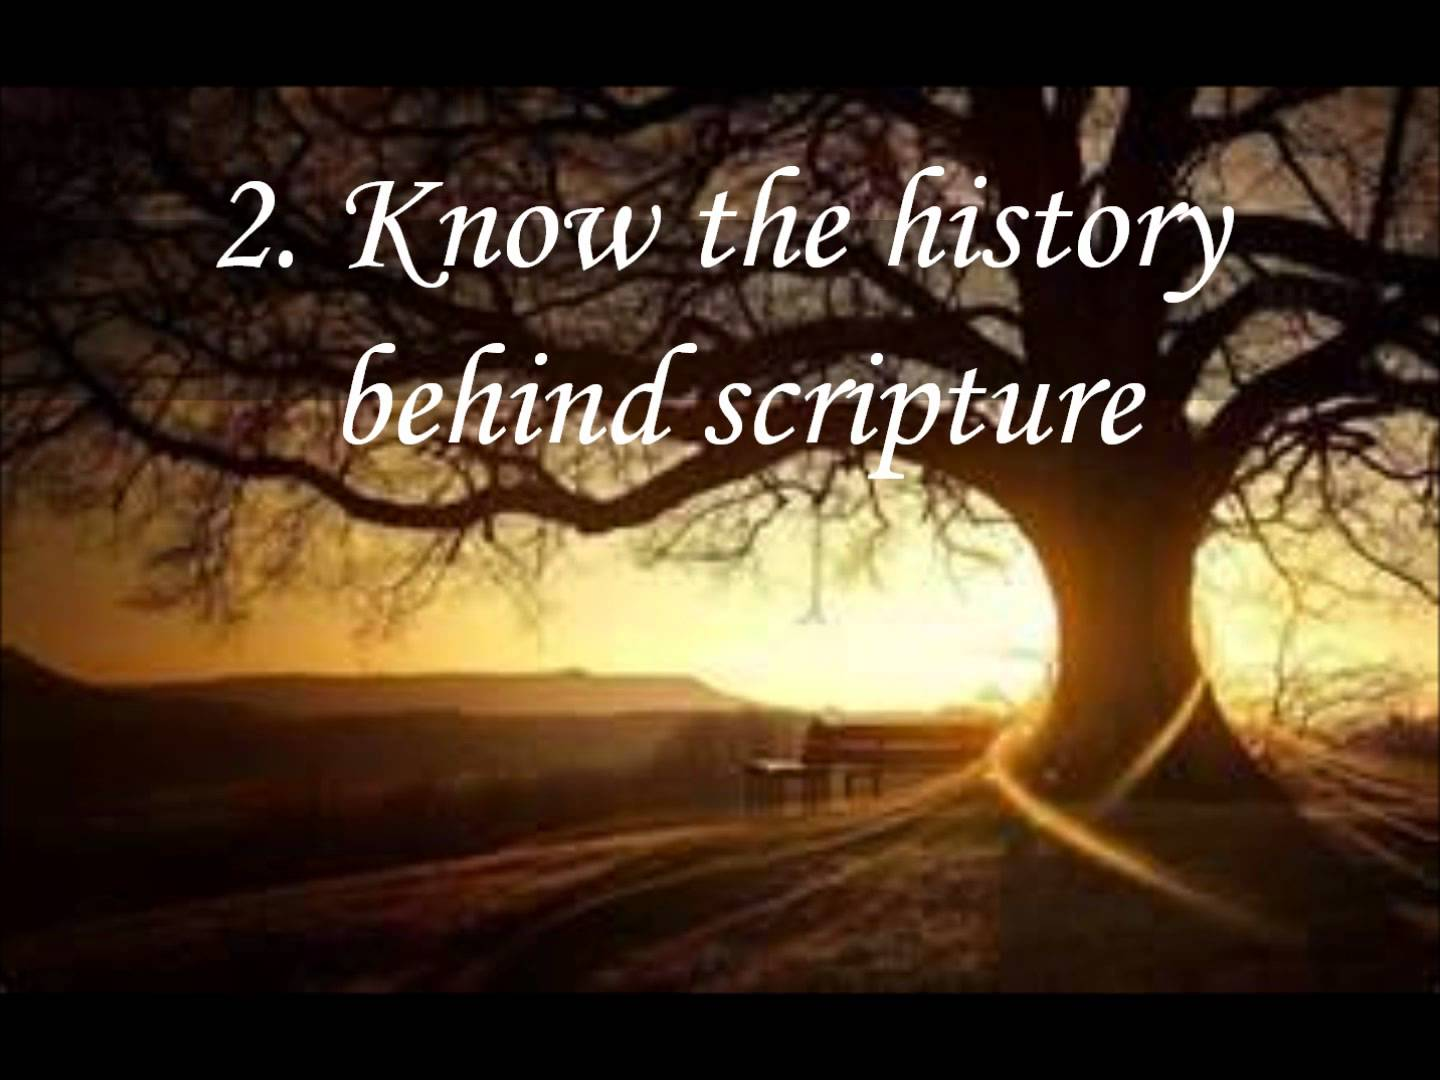 Genesis 9: How The Scriptures Once Used Against Black People Reinforce The Godly Black Presence in the World